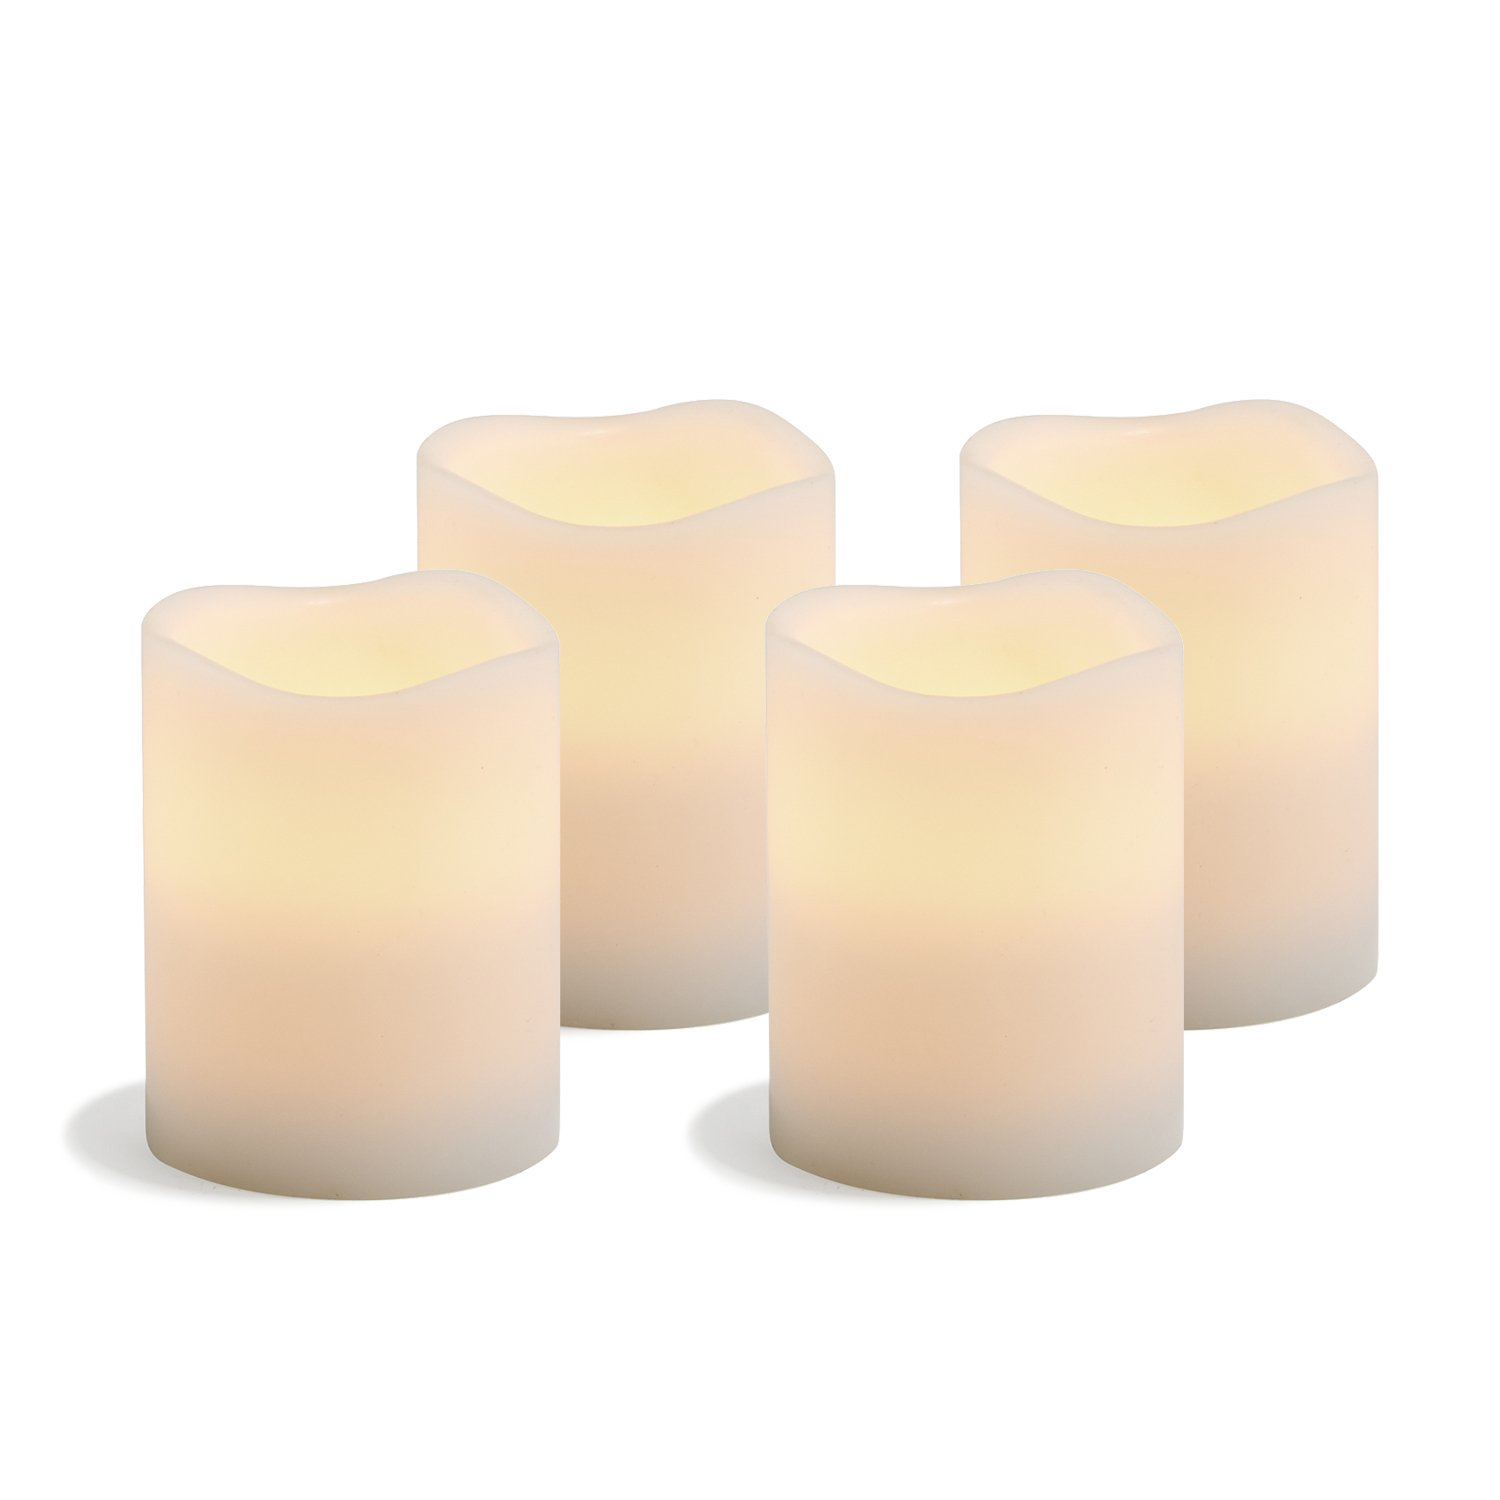 White Flameless Wax Pillar Candles, Set of 4, Warm White LEDs, 4'' Height, Batteries Included, Decorative Candle Set by LampLust - For Home Decor, Weddings and Gifts